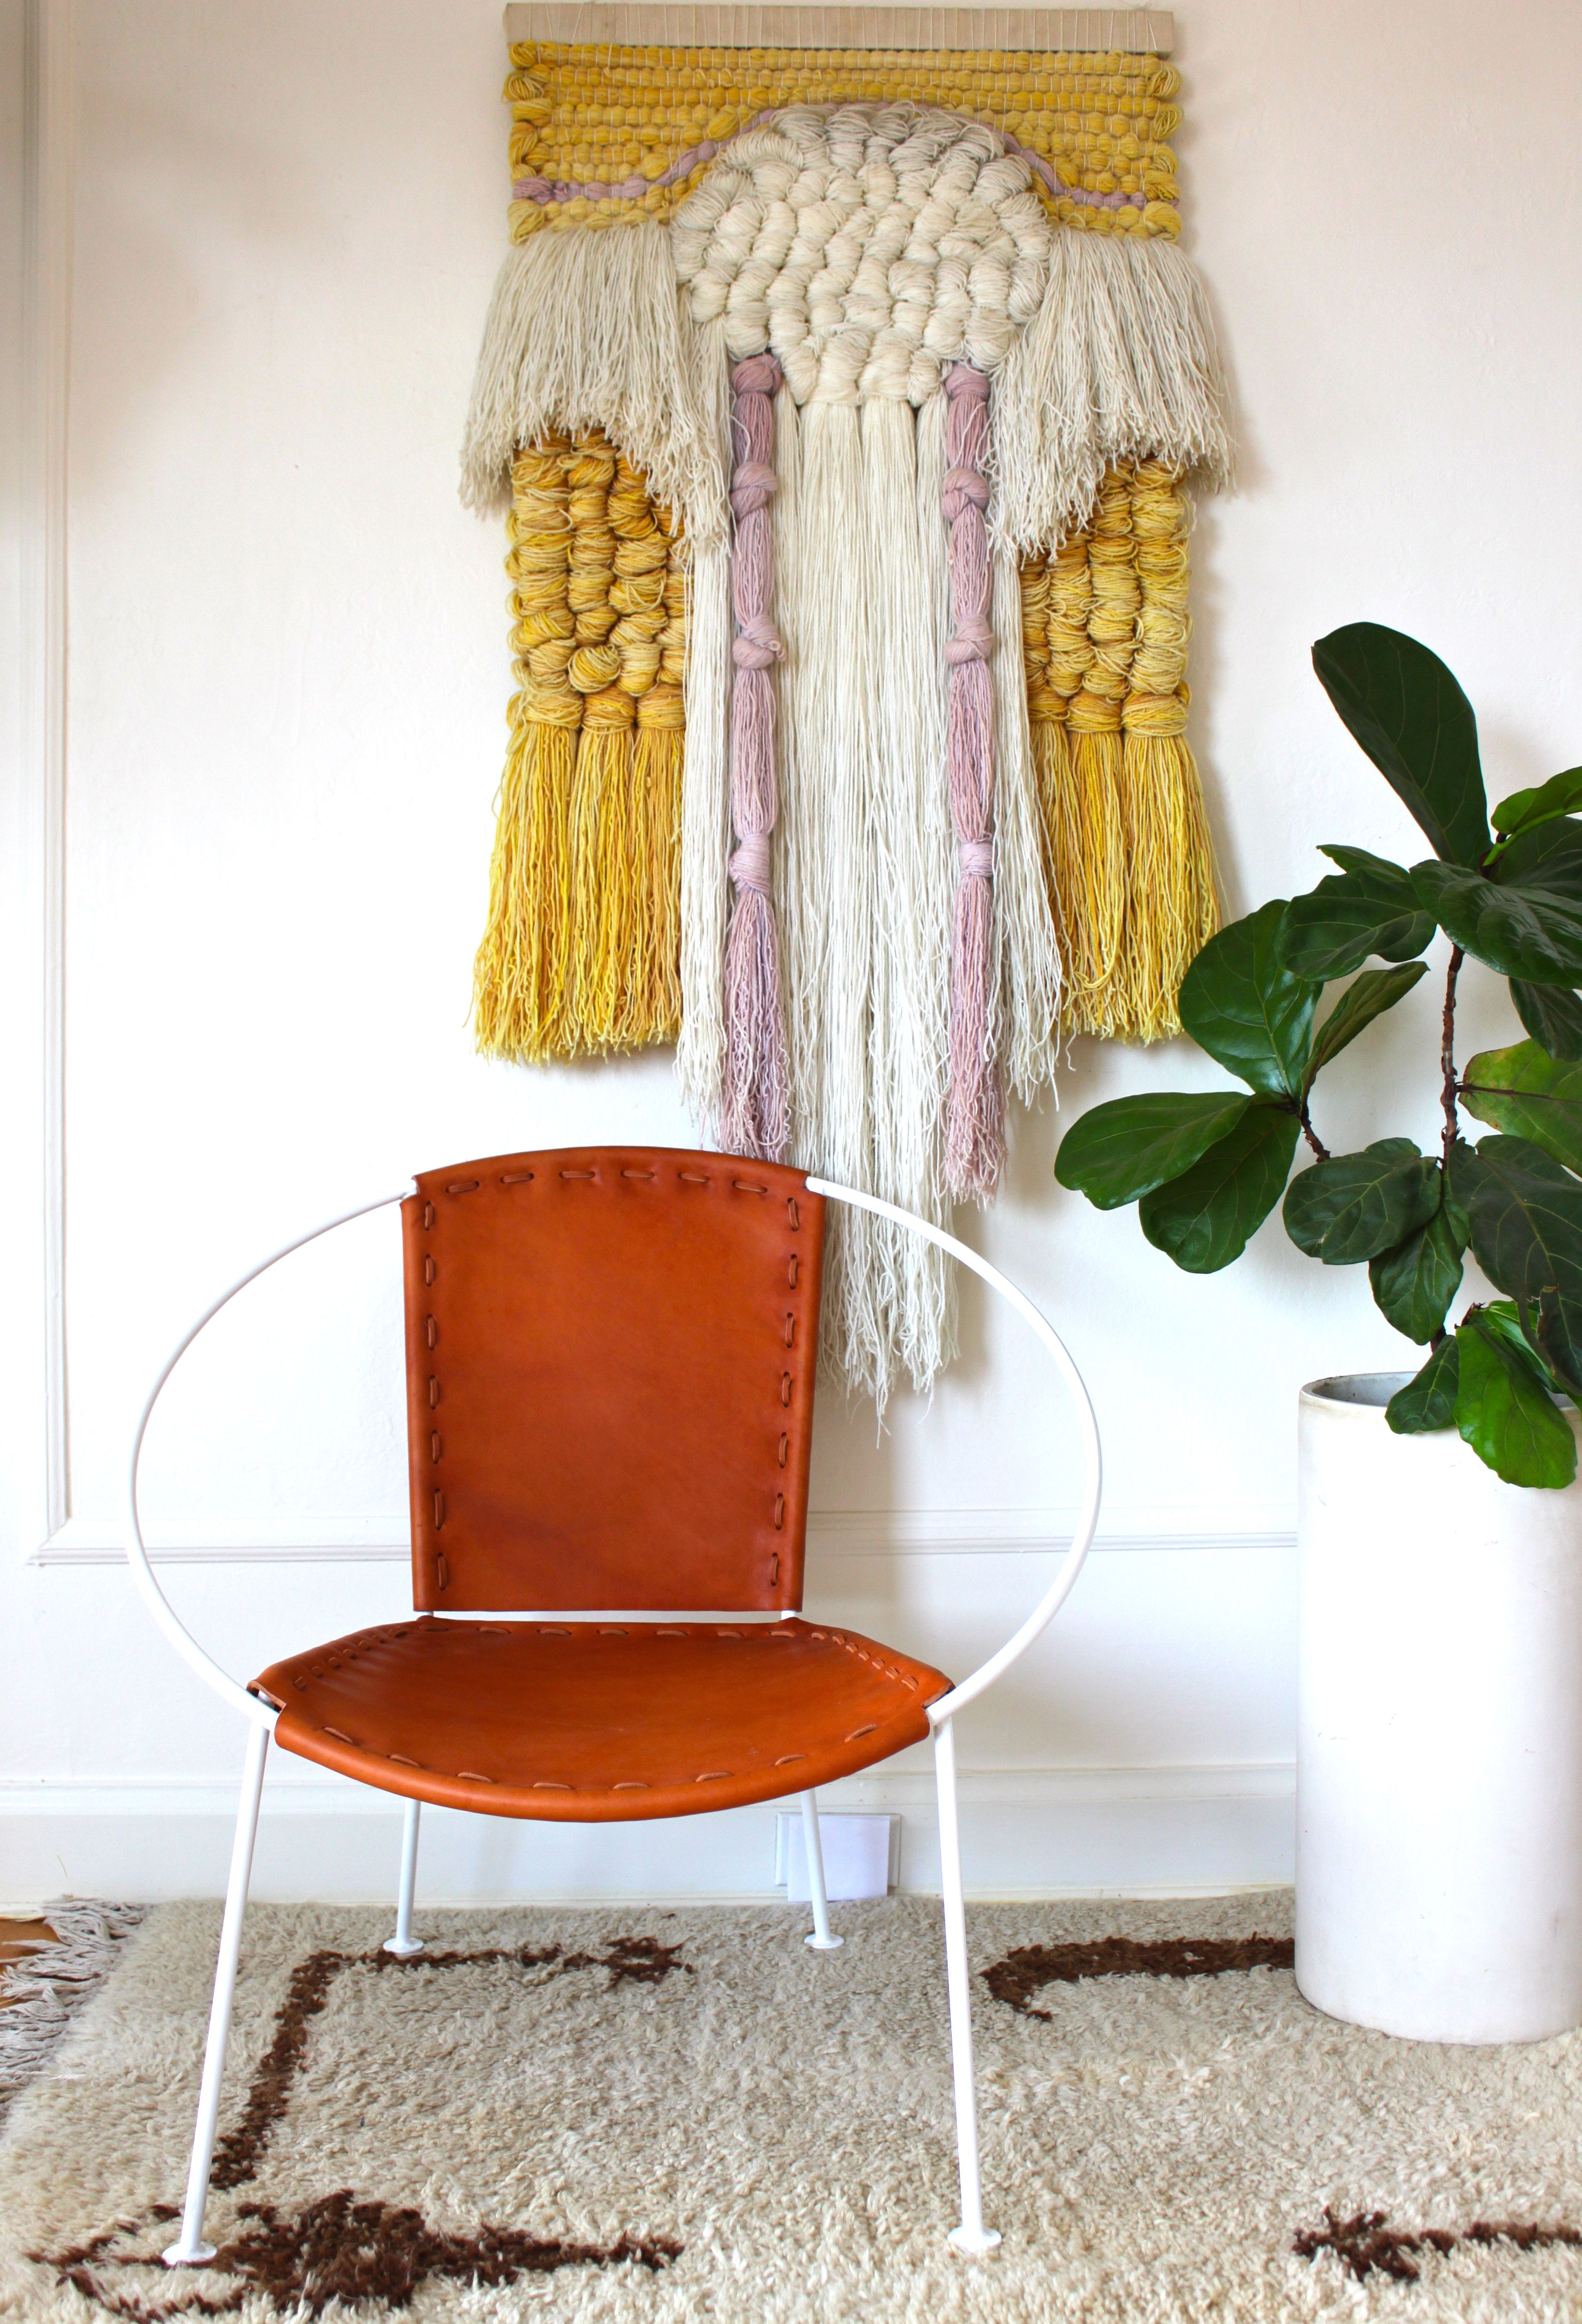 Memory of a Circle chair from MODERNHAUS @modernhaus paired with vintage fiber art / weaving from @morgansatterfield